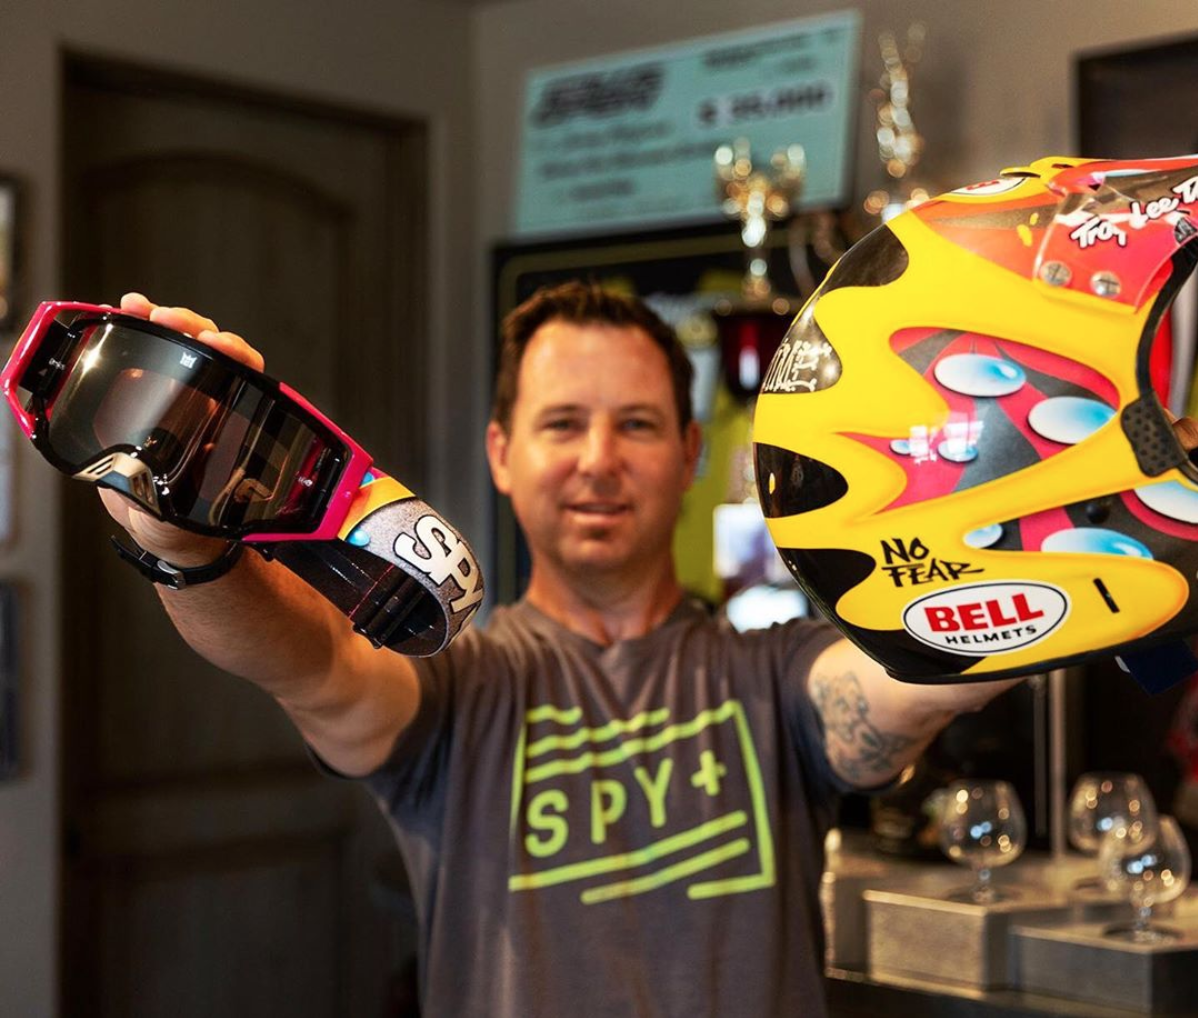 SPY Optics - 2% of net sales from the SPY X JEREMY MCGRATH X KAB collaboration MX goggle are donated to KAB!